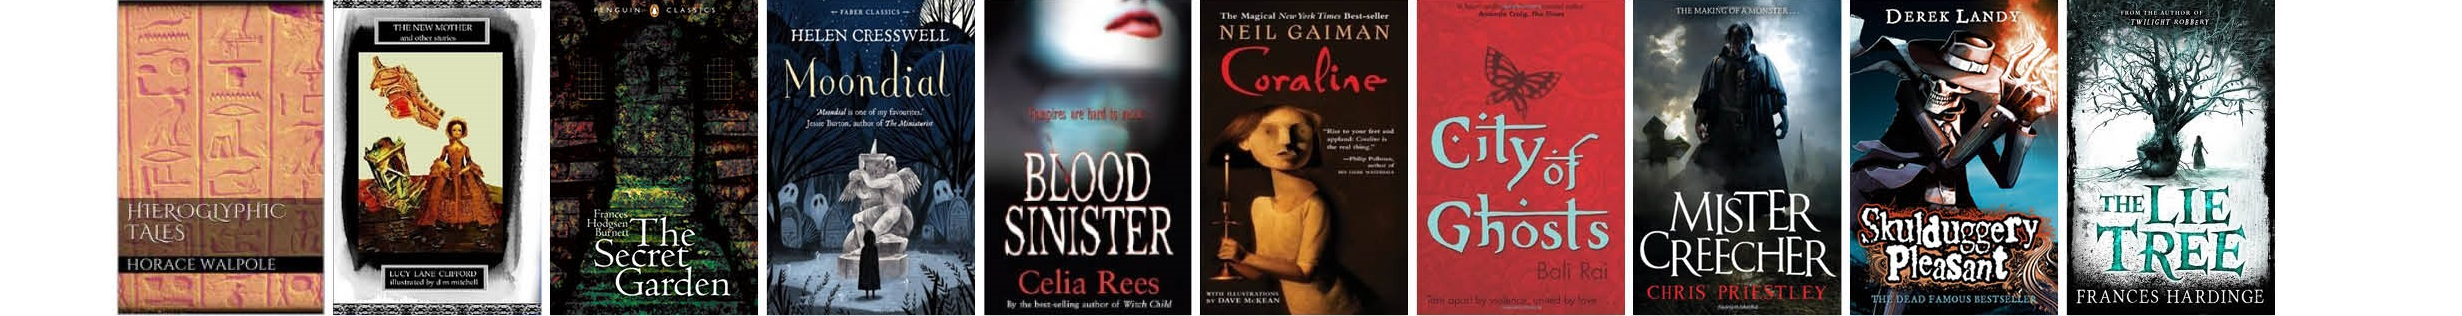 Gothic Children's Fiction Top Ten Covers